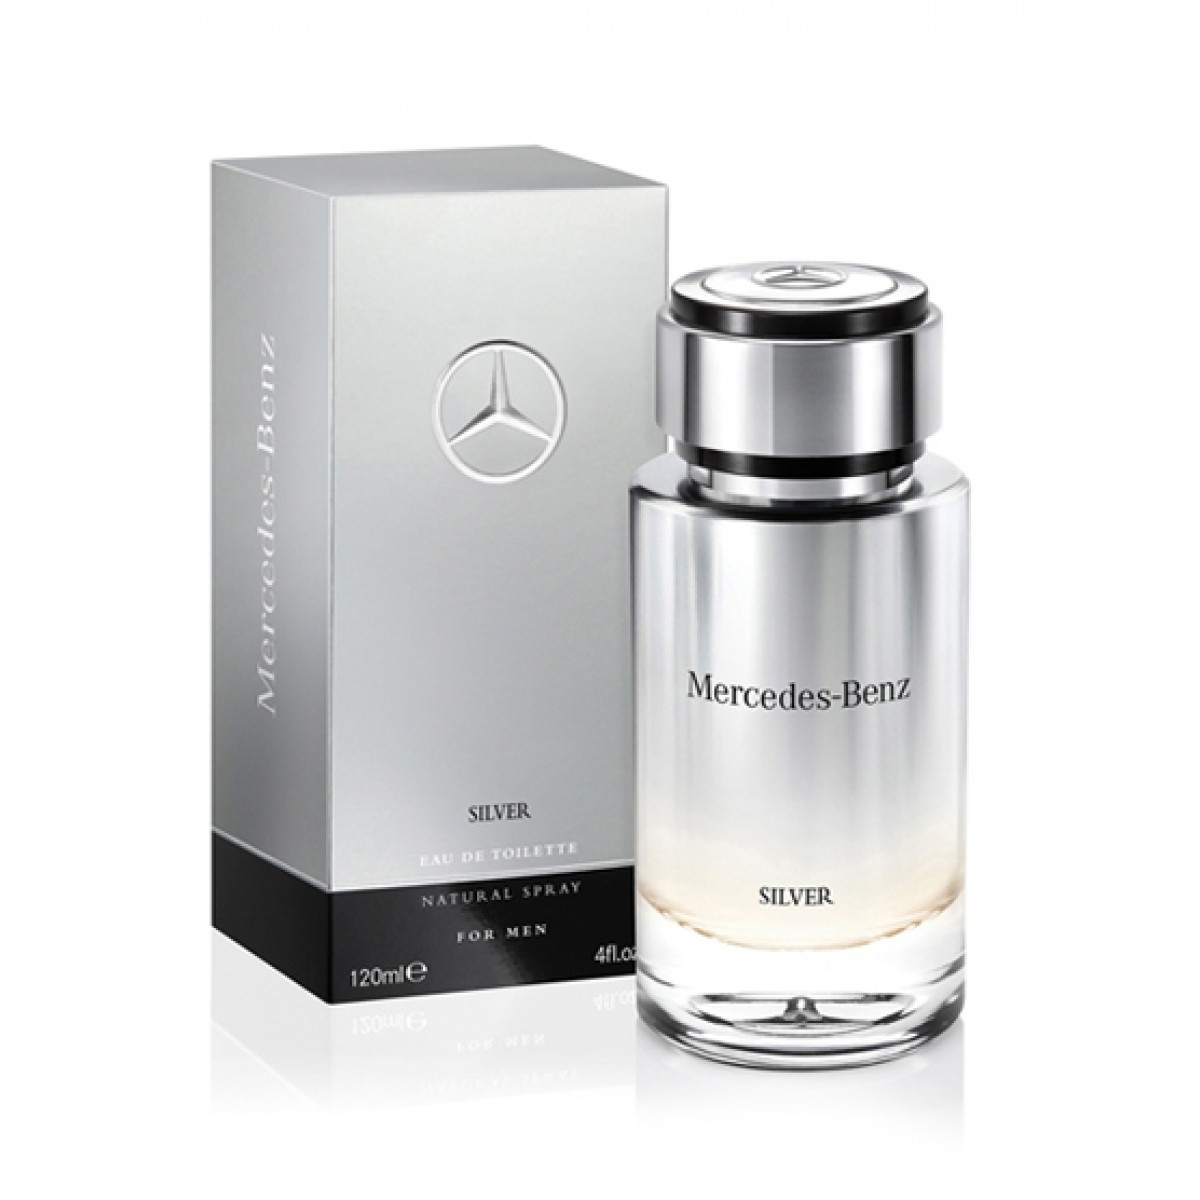 mercedes benz silver edt perfume price in pakistan. Black Bedroom Furniture Sets. Home Design Ideas